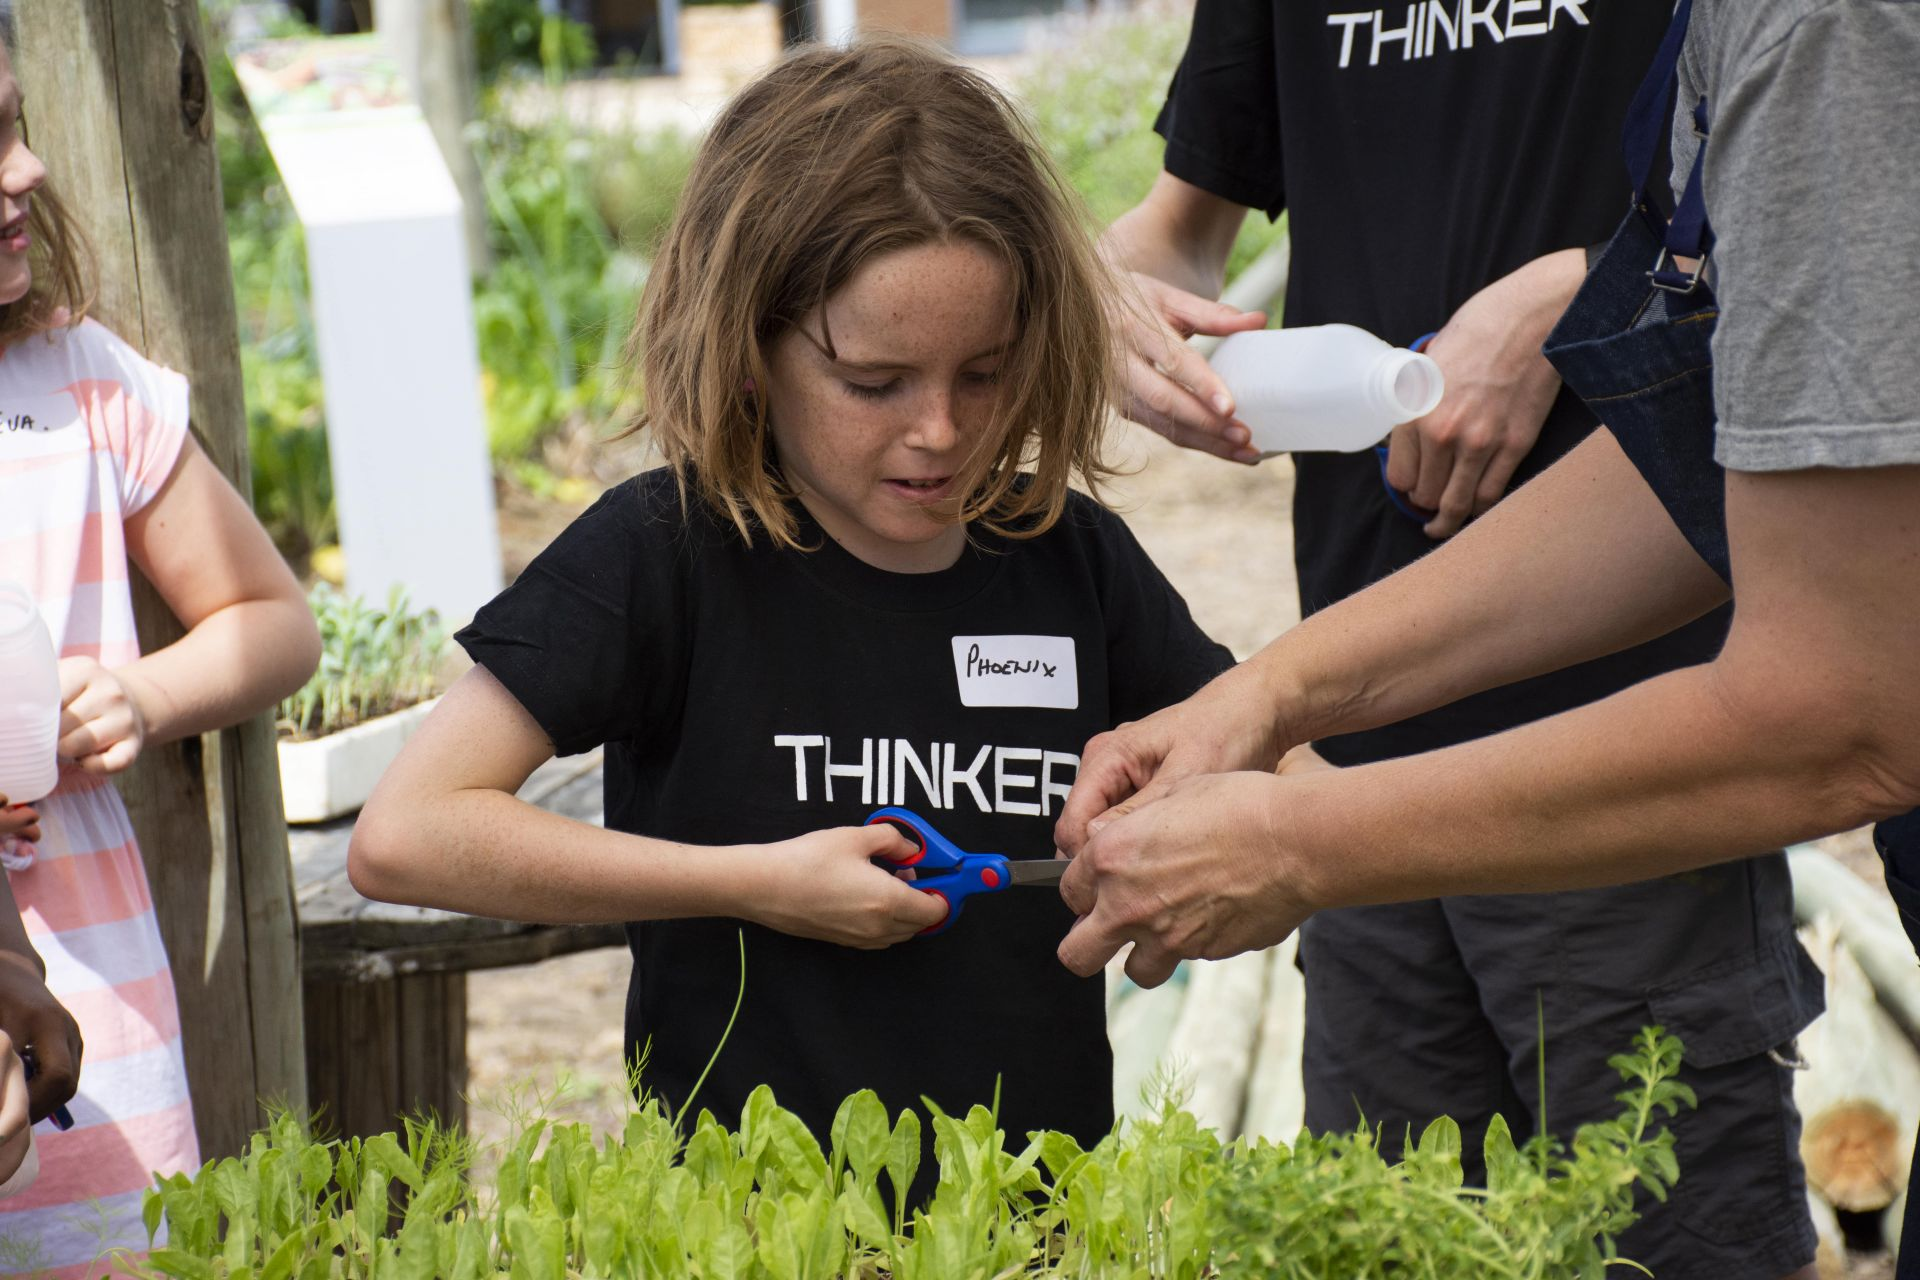 A place where #ThinkersPlay<span>A place where #ThinkersPlay</span>